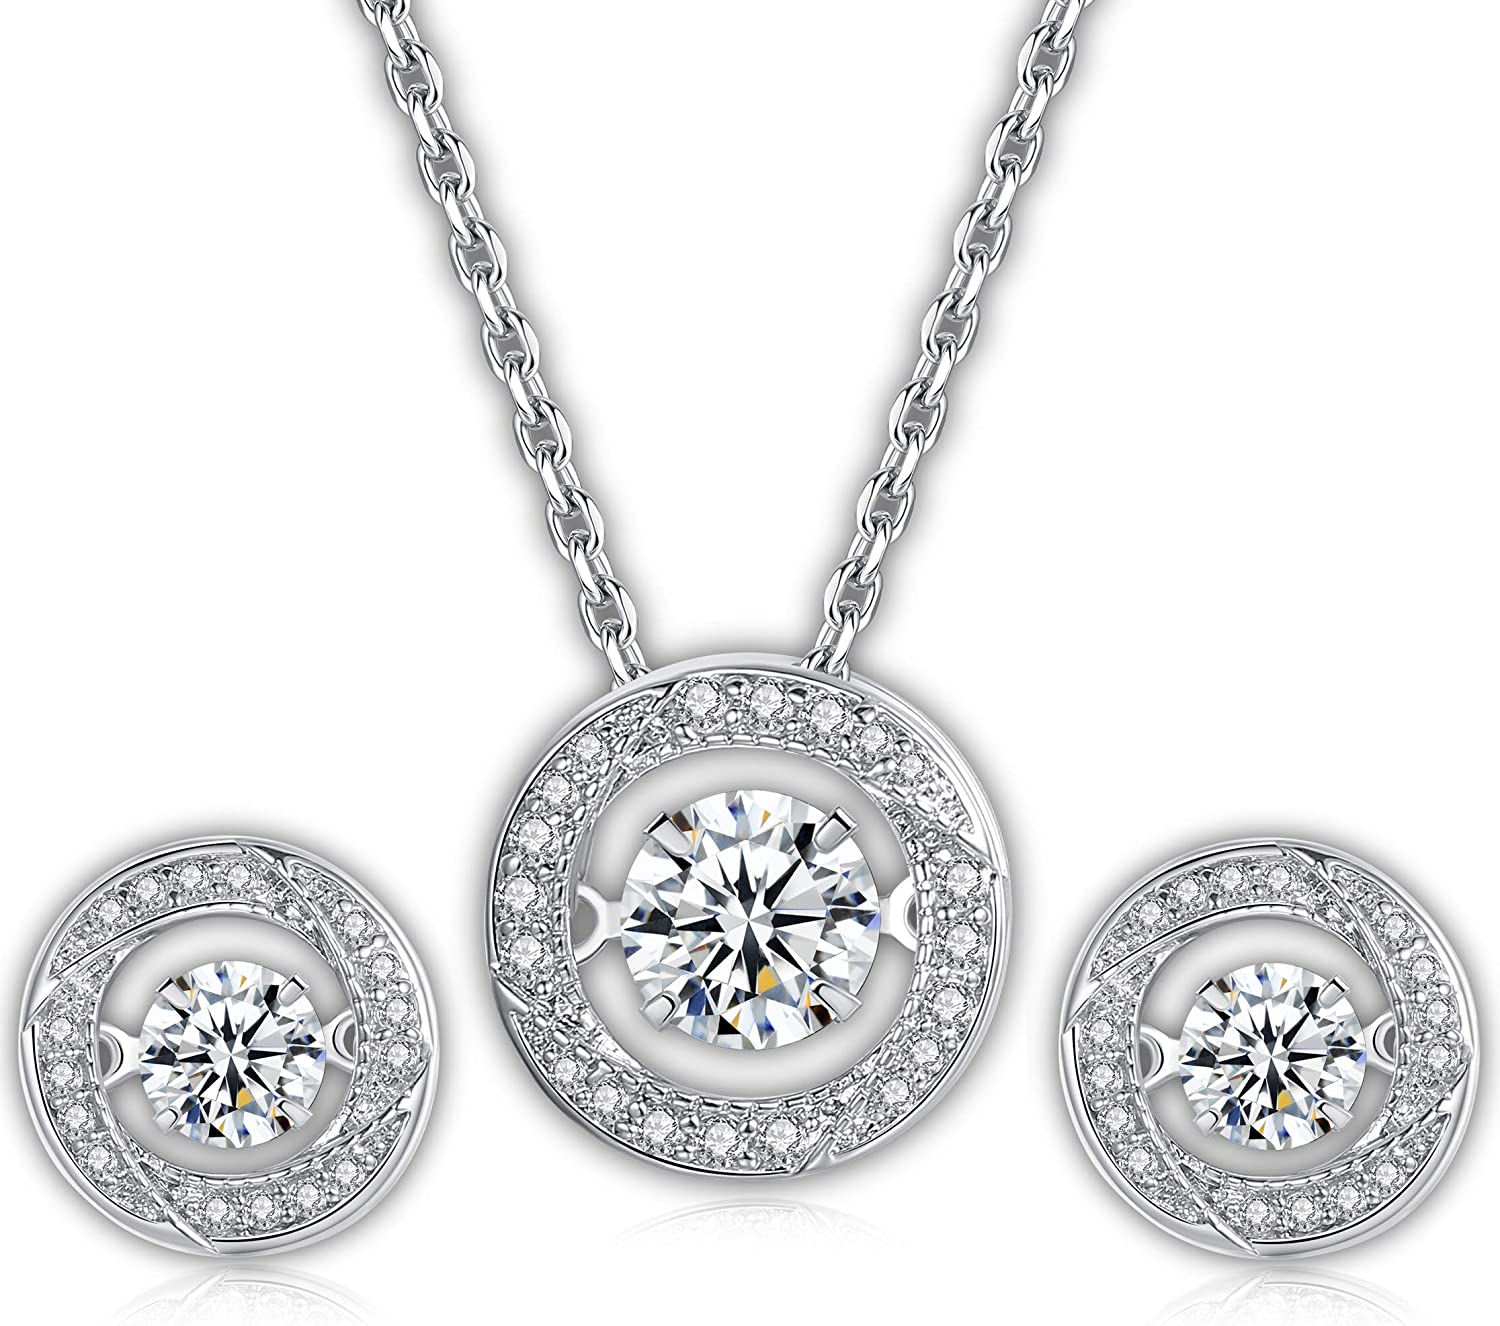 Dancing Stone Jewelry Set – White Gold-Plated Dancing Pendant & Earrings – Fine Jewelry Necklace & Stud Earrings – Sparkling Cubic Zirconia Embedded Stones – Delicate & Elegant Jewelry for Women